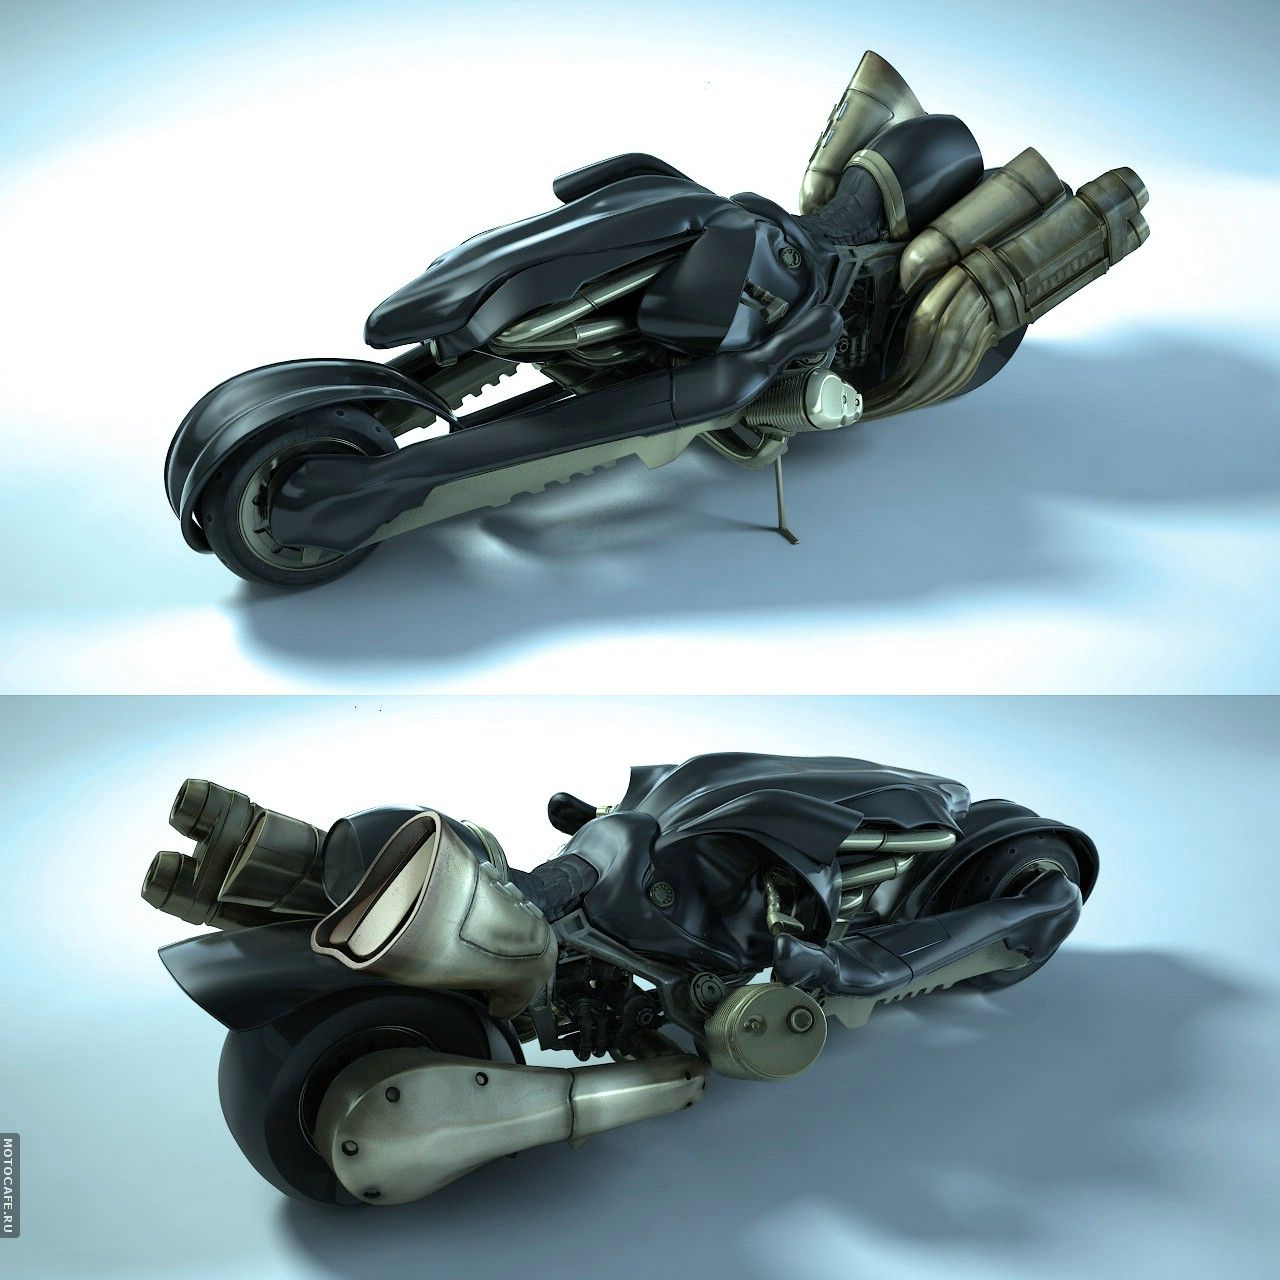 Exceptionnel Fenrir From Final Fantasy VII: Advent Children Movie. I Want This Bike So  Bad